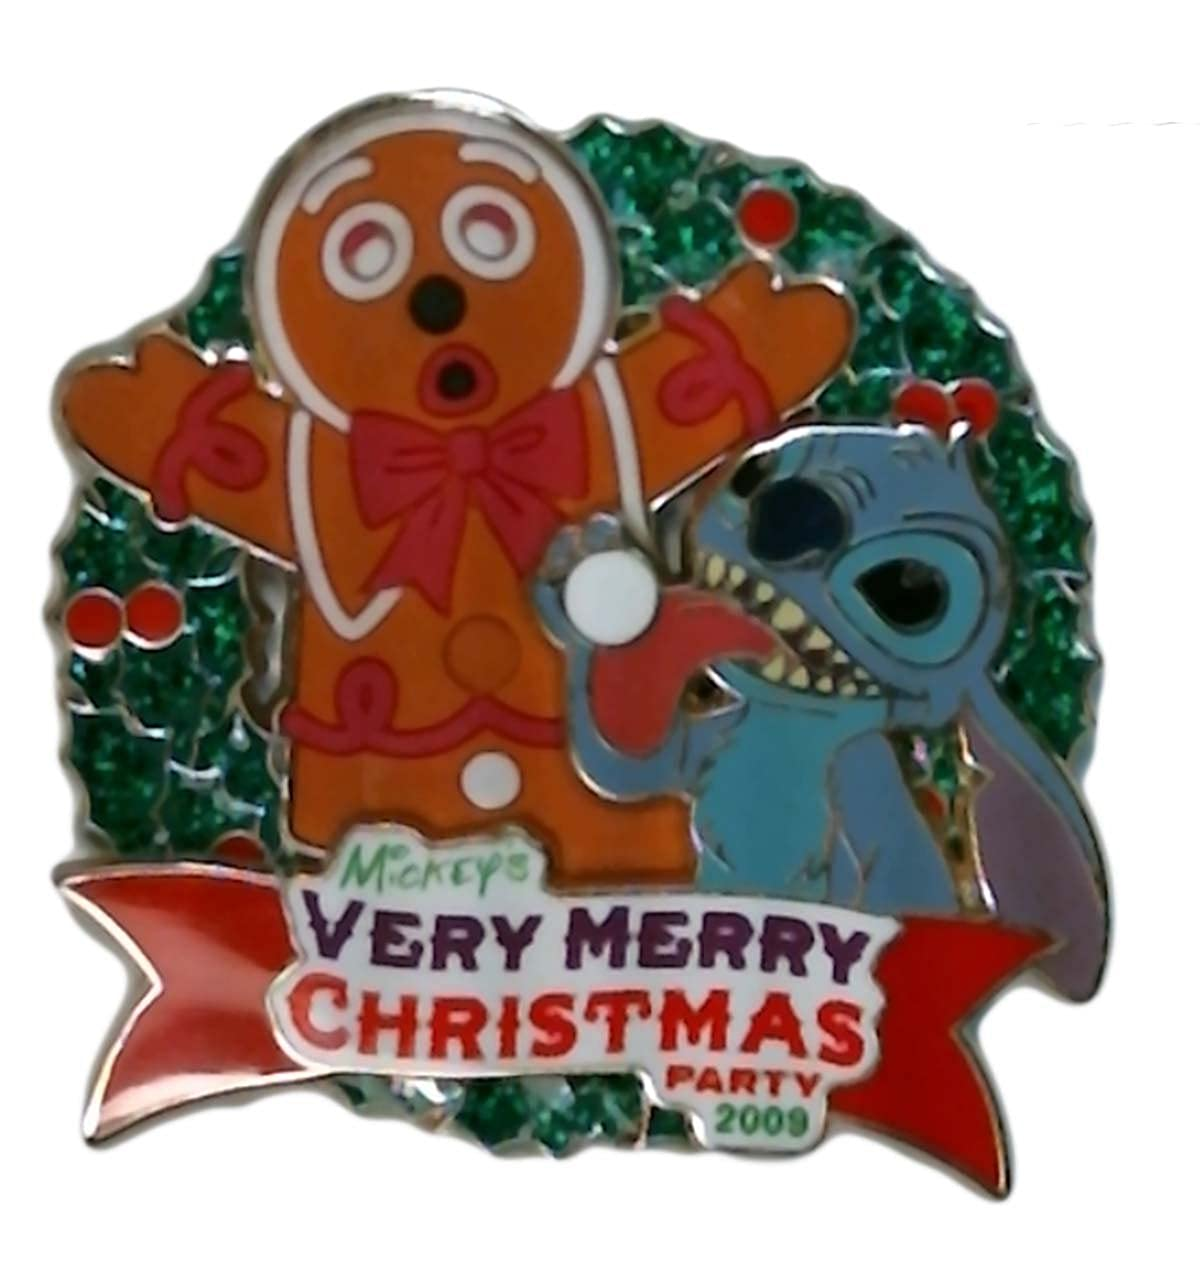 Disney Pins Mickey S Very Merry Christmas Party 2009 Stitch And Gingerbread Man Limited Edition Pin 73792 Multicoloured Small